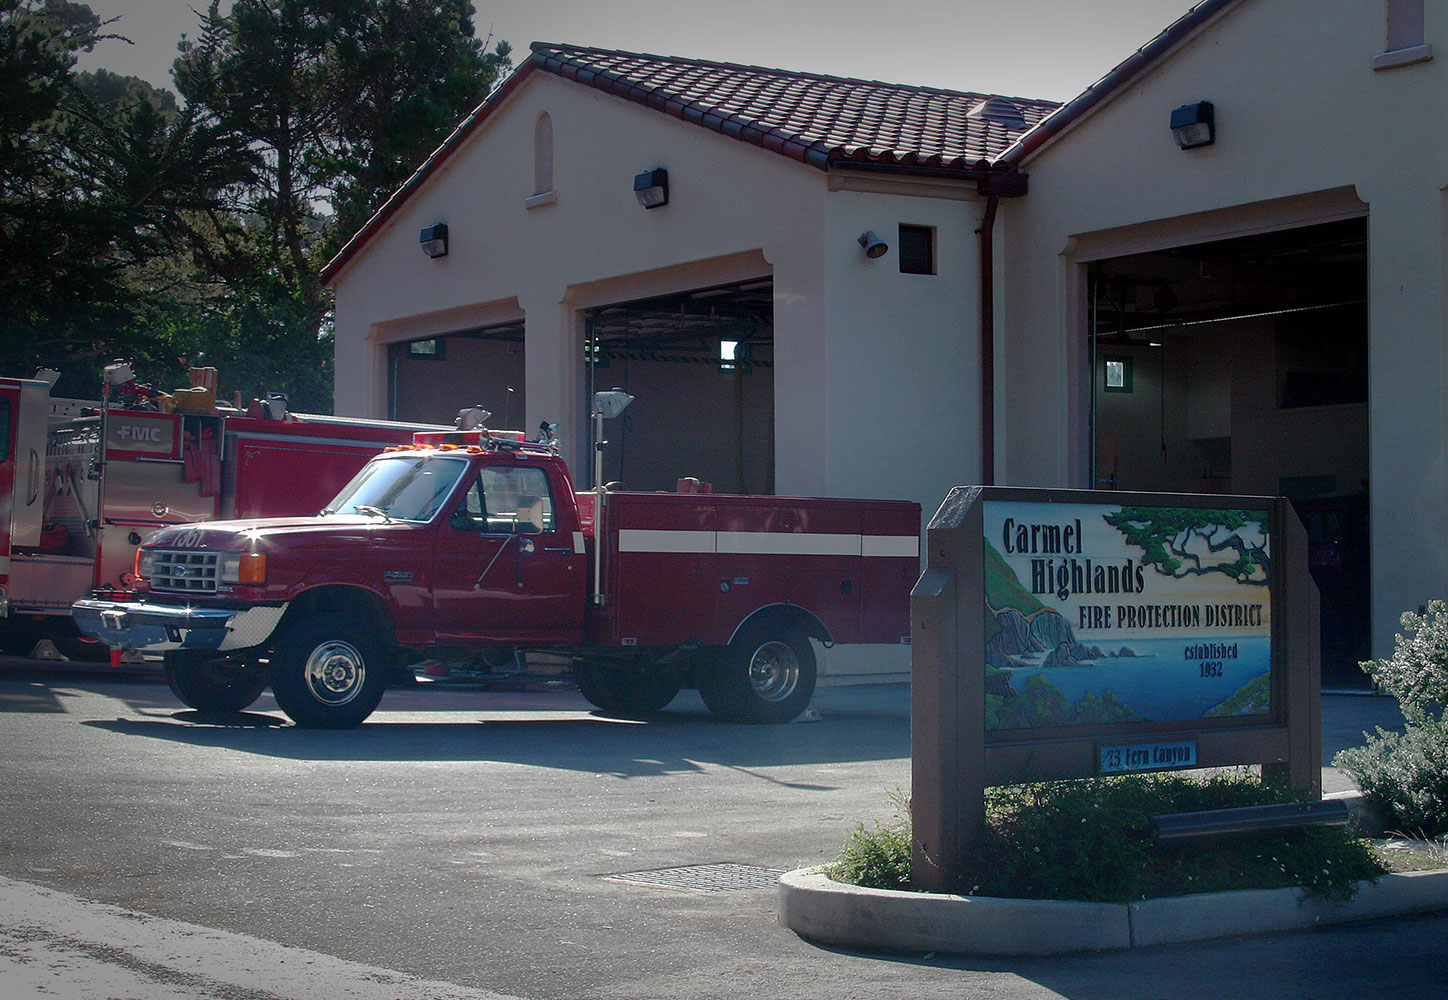 Carmel Highlands Fire Station